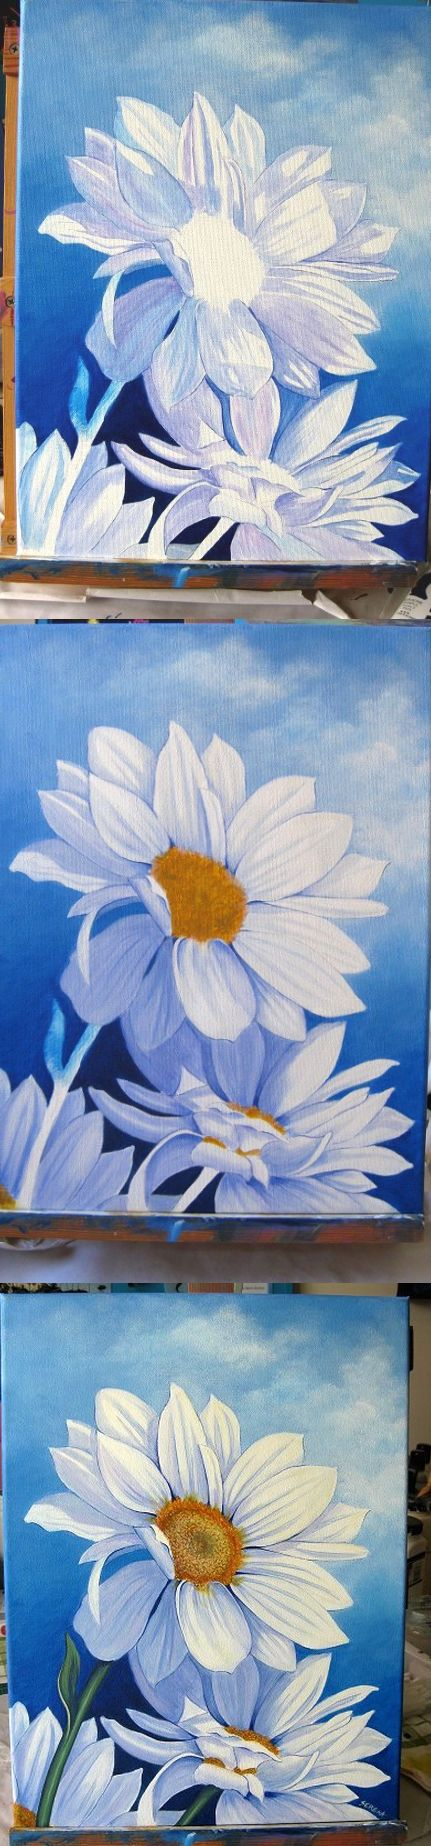 Serena Lewis, an Australian artist, beautifully captured the simplicity of this daisy in three easy steps. © Serena Lewis (Acrylic on canvas 12in x 16in)